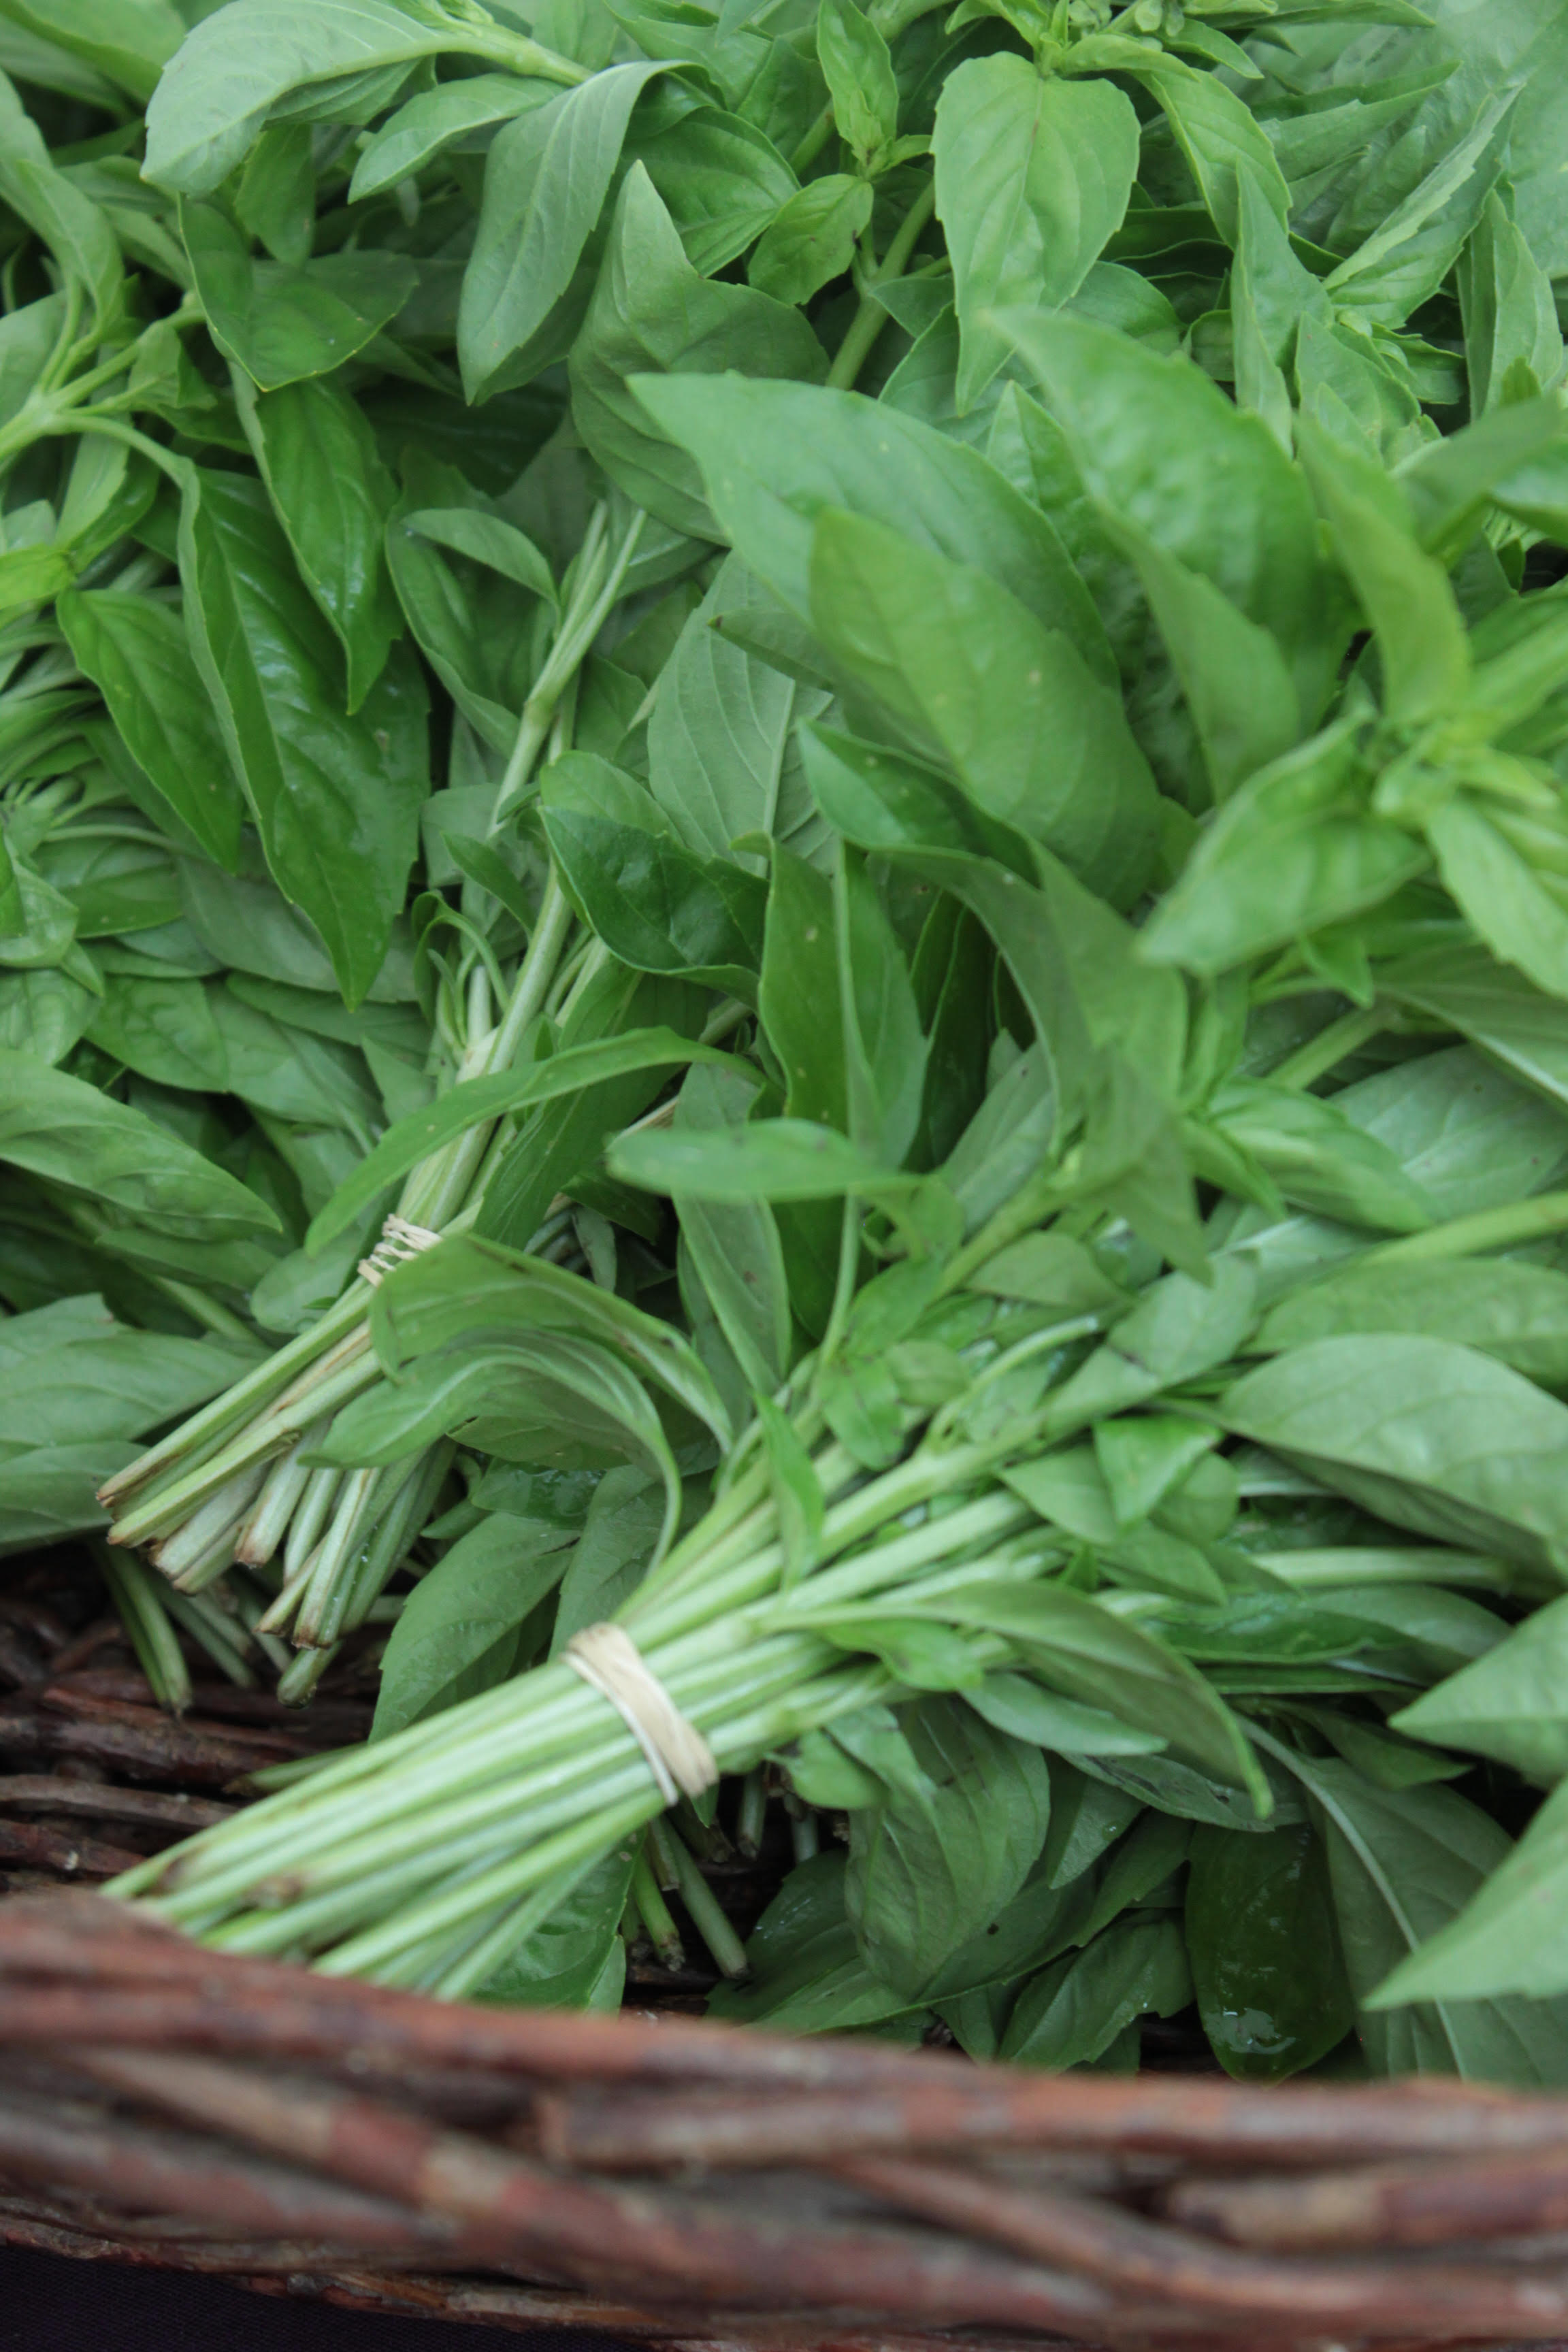 Close up of bunches of fresh basil from farmers market